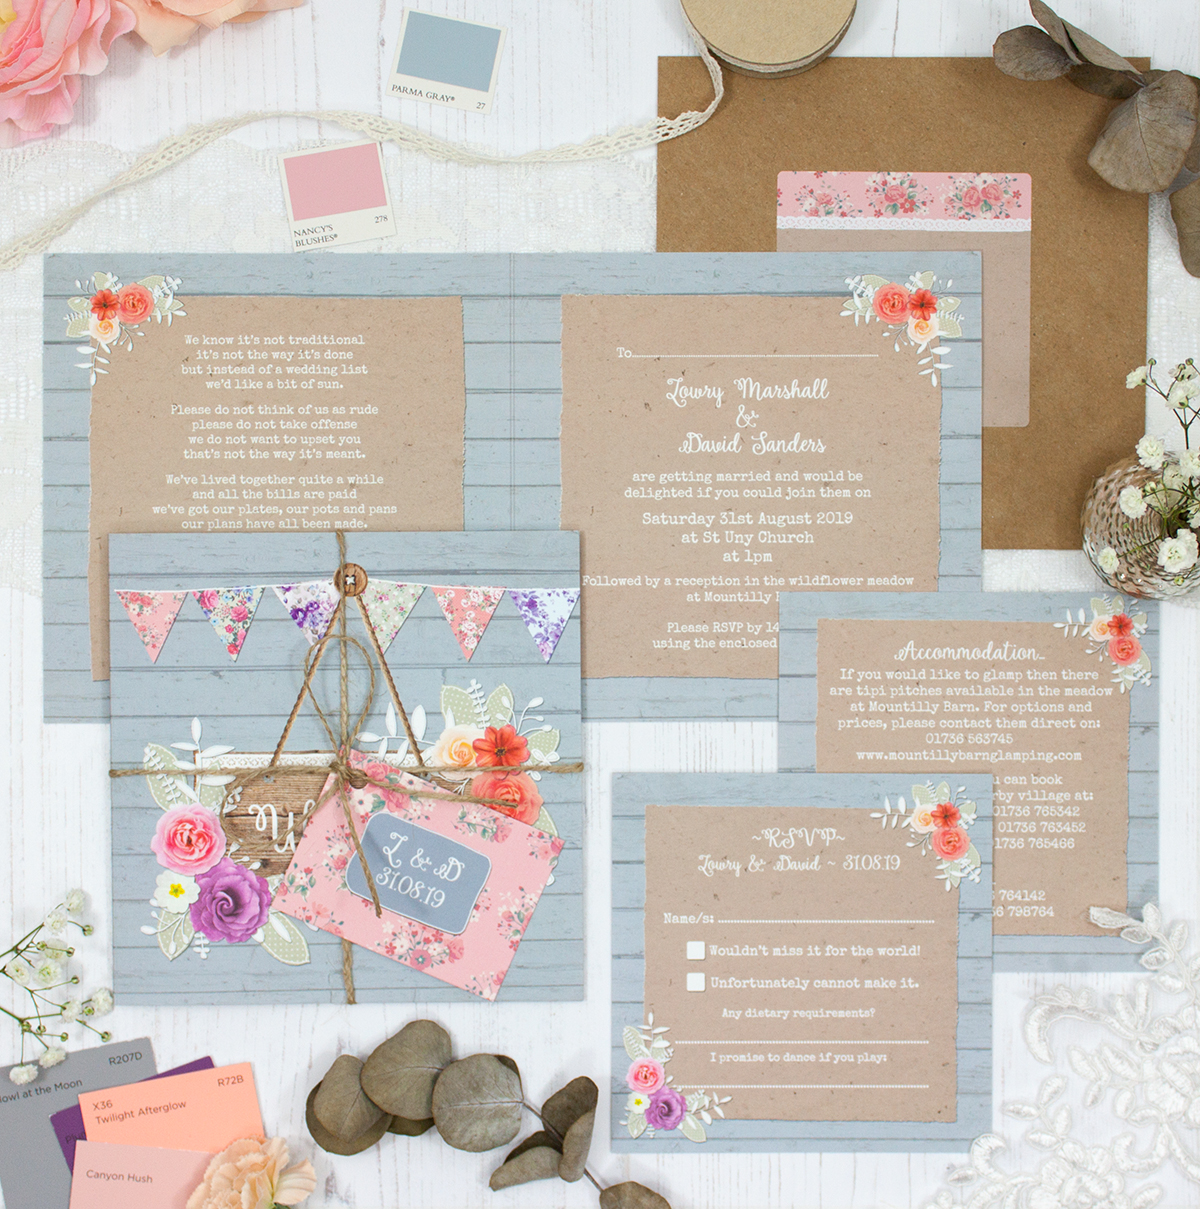 Cornflower Meadow Wedding showing invitation